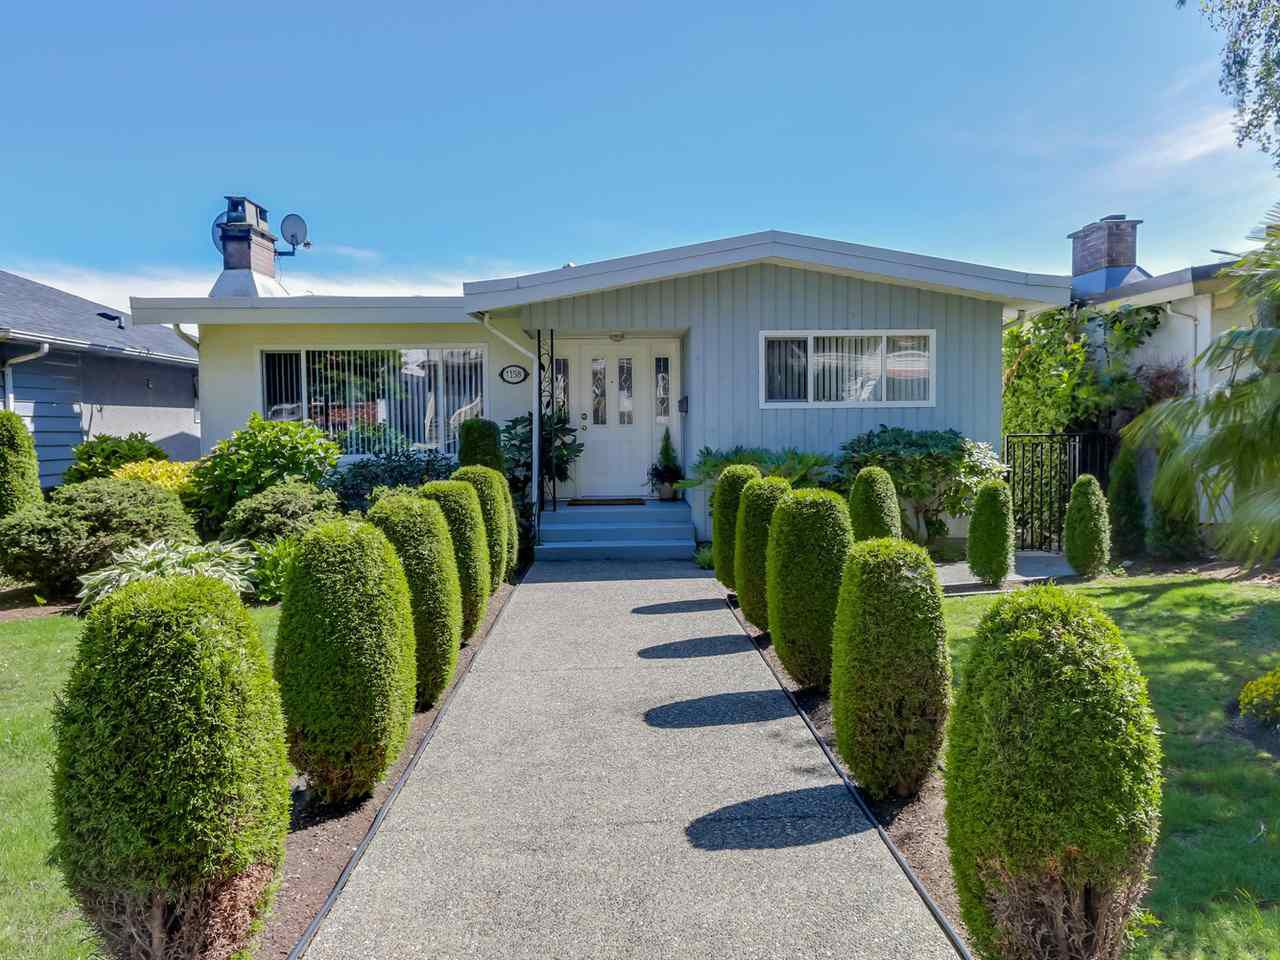 Main Photo: 1158 E 62ND AVENUE in Vancouver: South Vancouver House for sale (Vancouver East)  : MLS®# R2082544